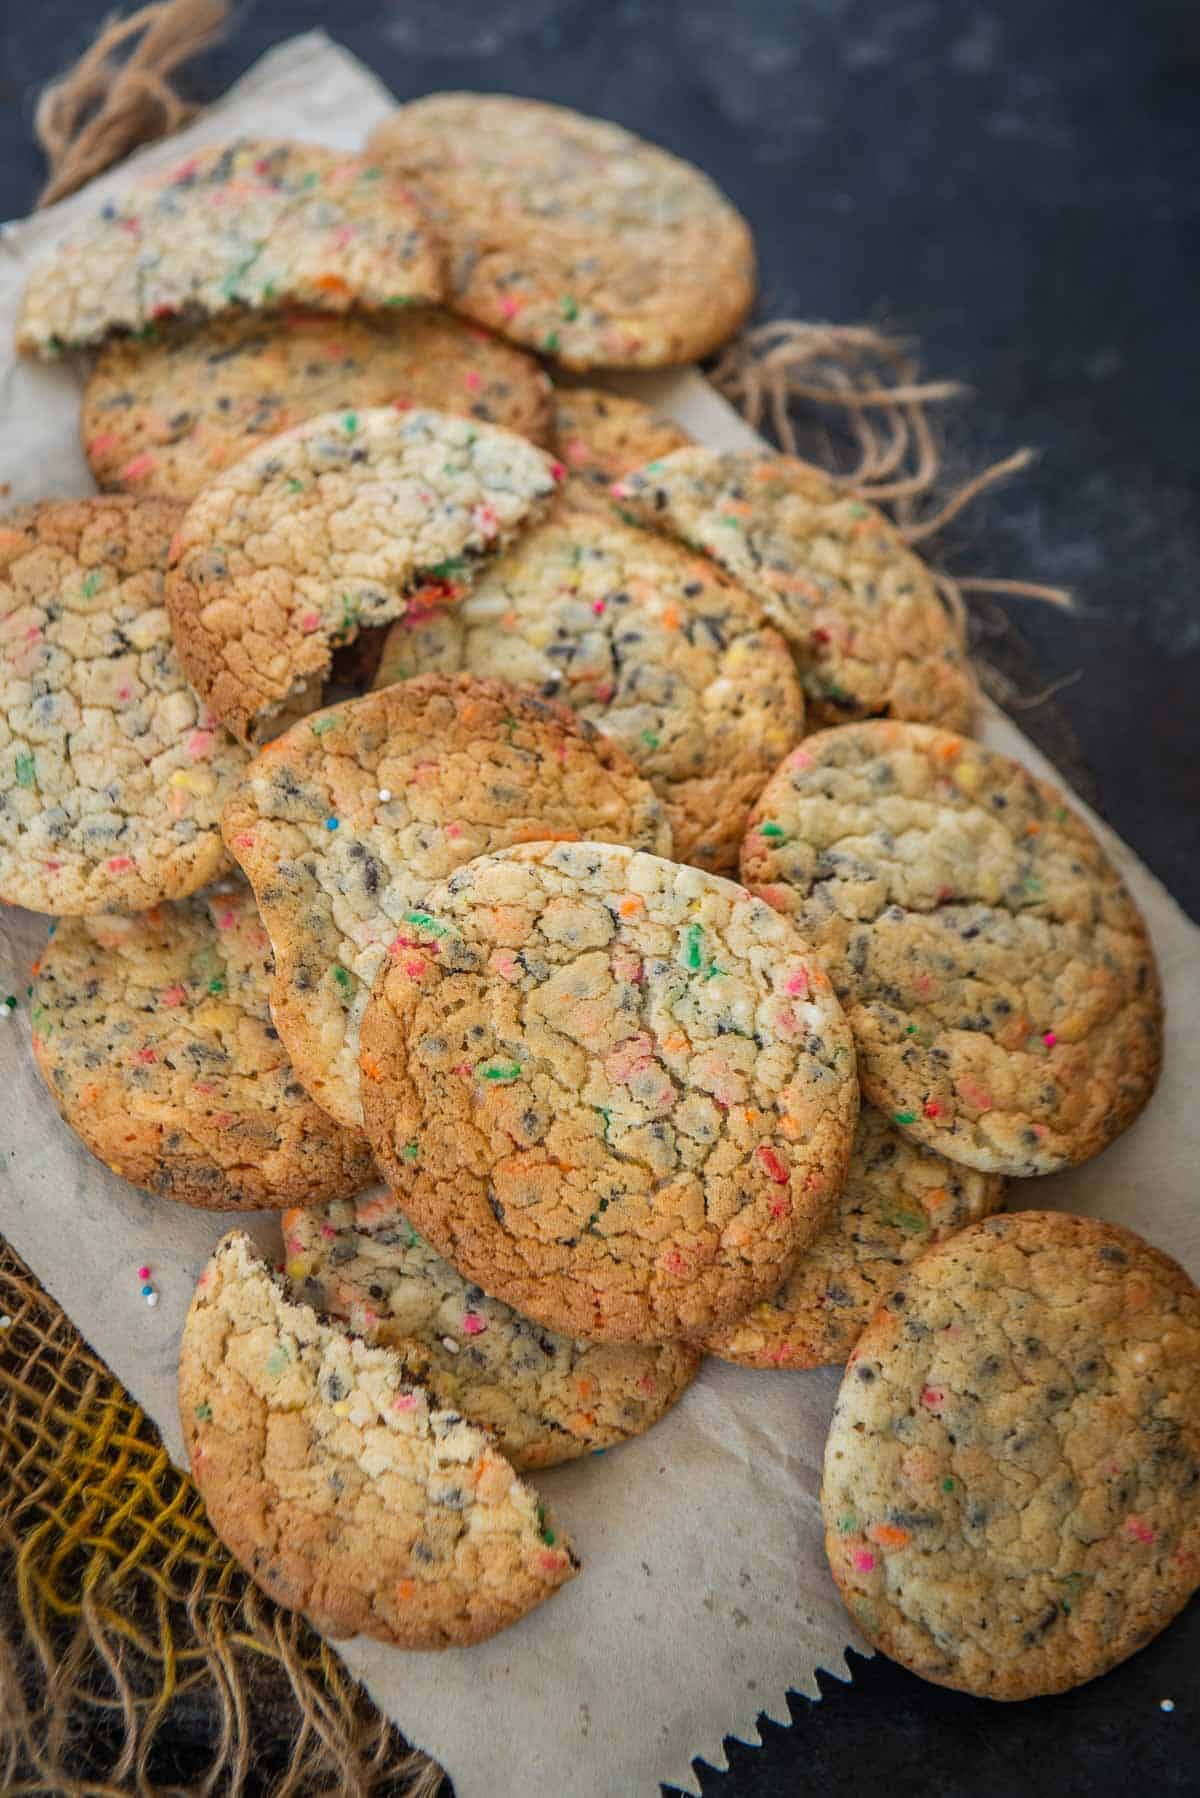 Cake Mix Cookies served on a plate.